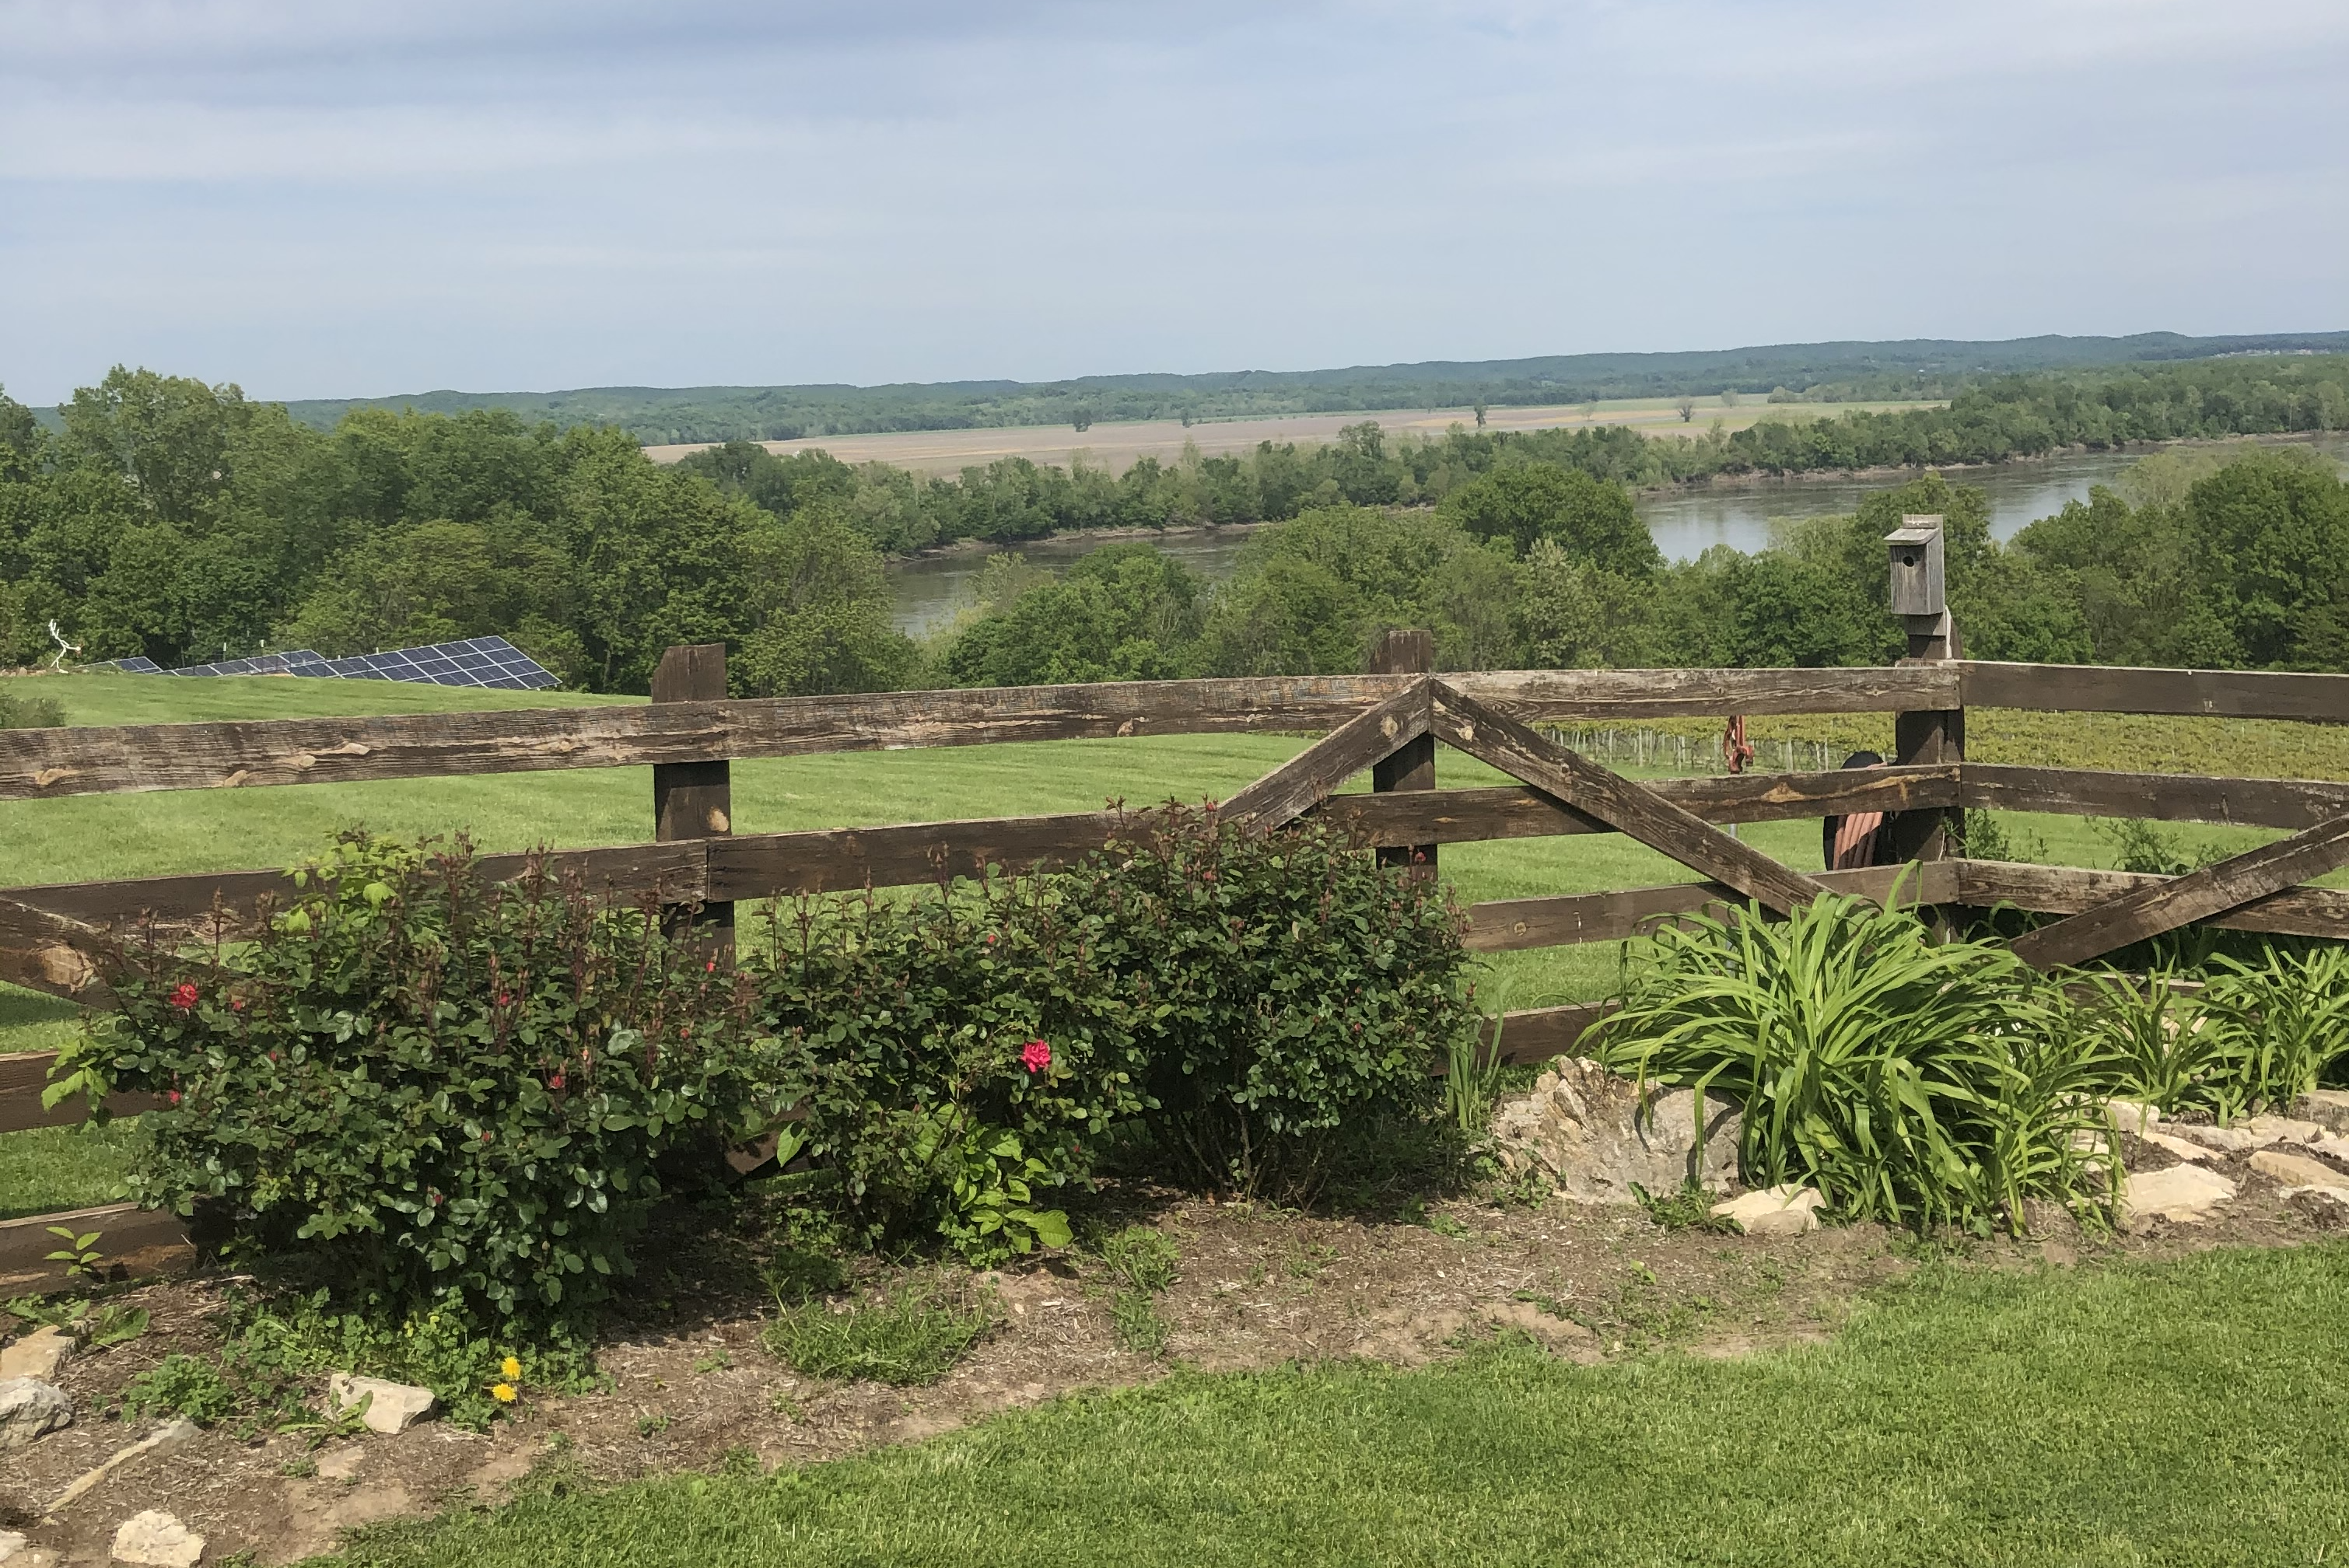 View from winery in Hermann, MO